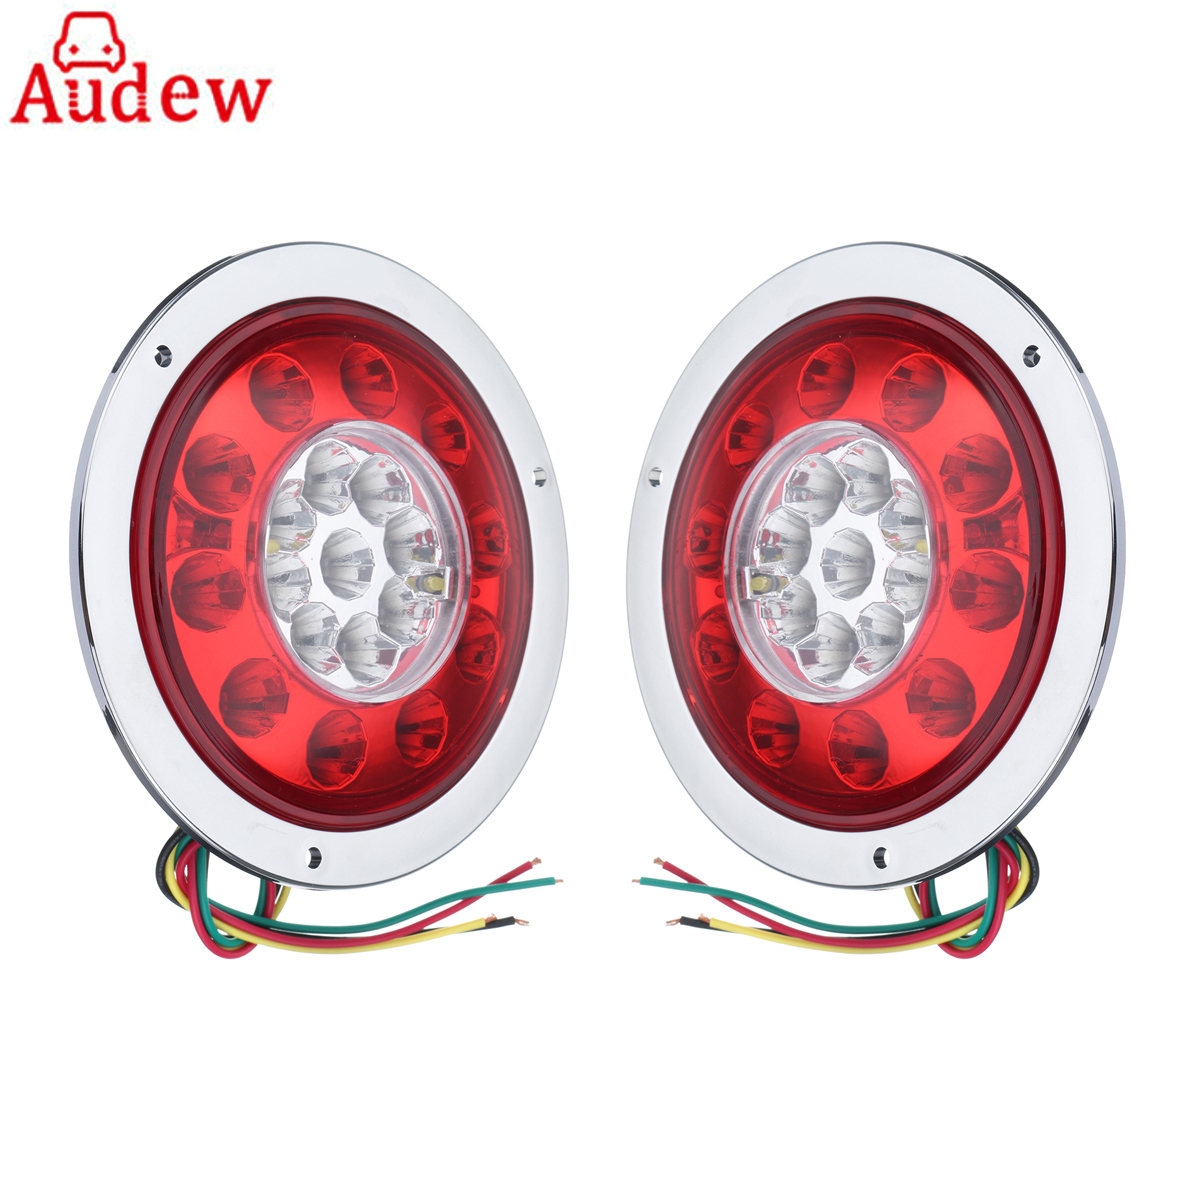 2pcs Waterproof Car Trailer Truck 19 LED Round Tail Brake Light Turn Signal Stop Light Side Lamp Yellow&Red 2pcs 20 led car truck red amber white led trailer waterproof tail lights turn signal brake light stop rear lamp dc 12v cy798 cn